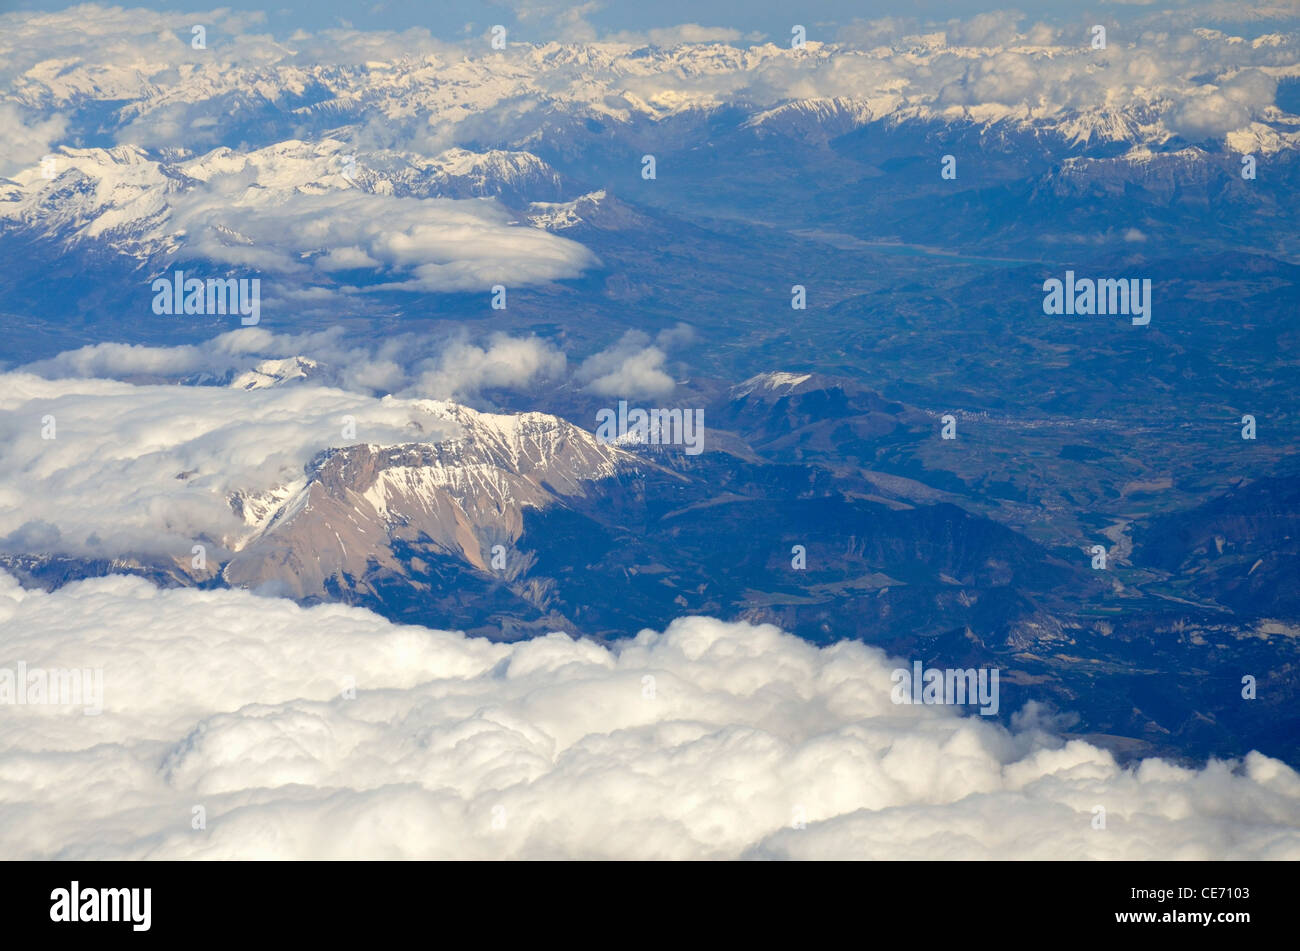 Snow on French Alps summits at spring, France, (aerial view) - Stock Image